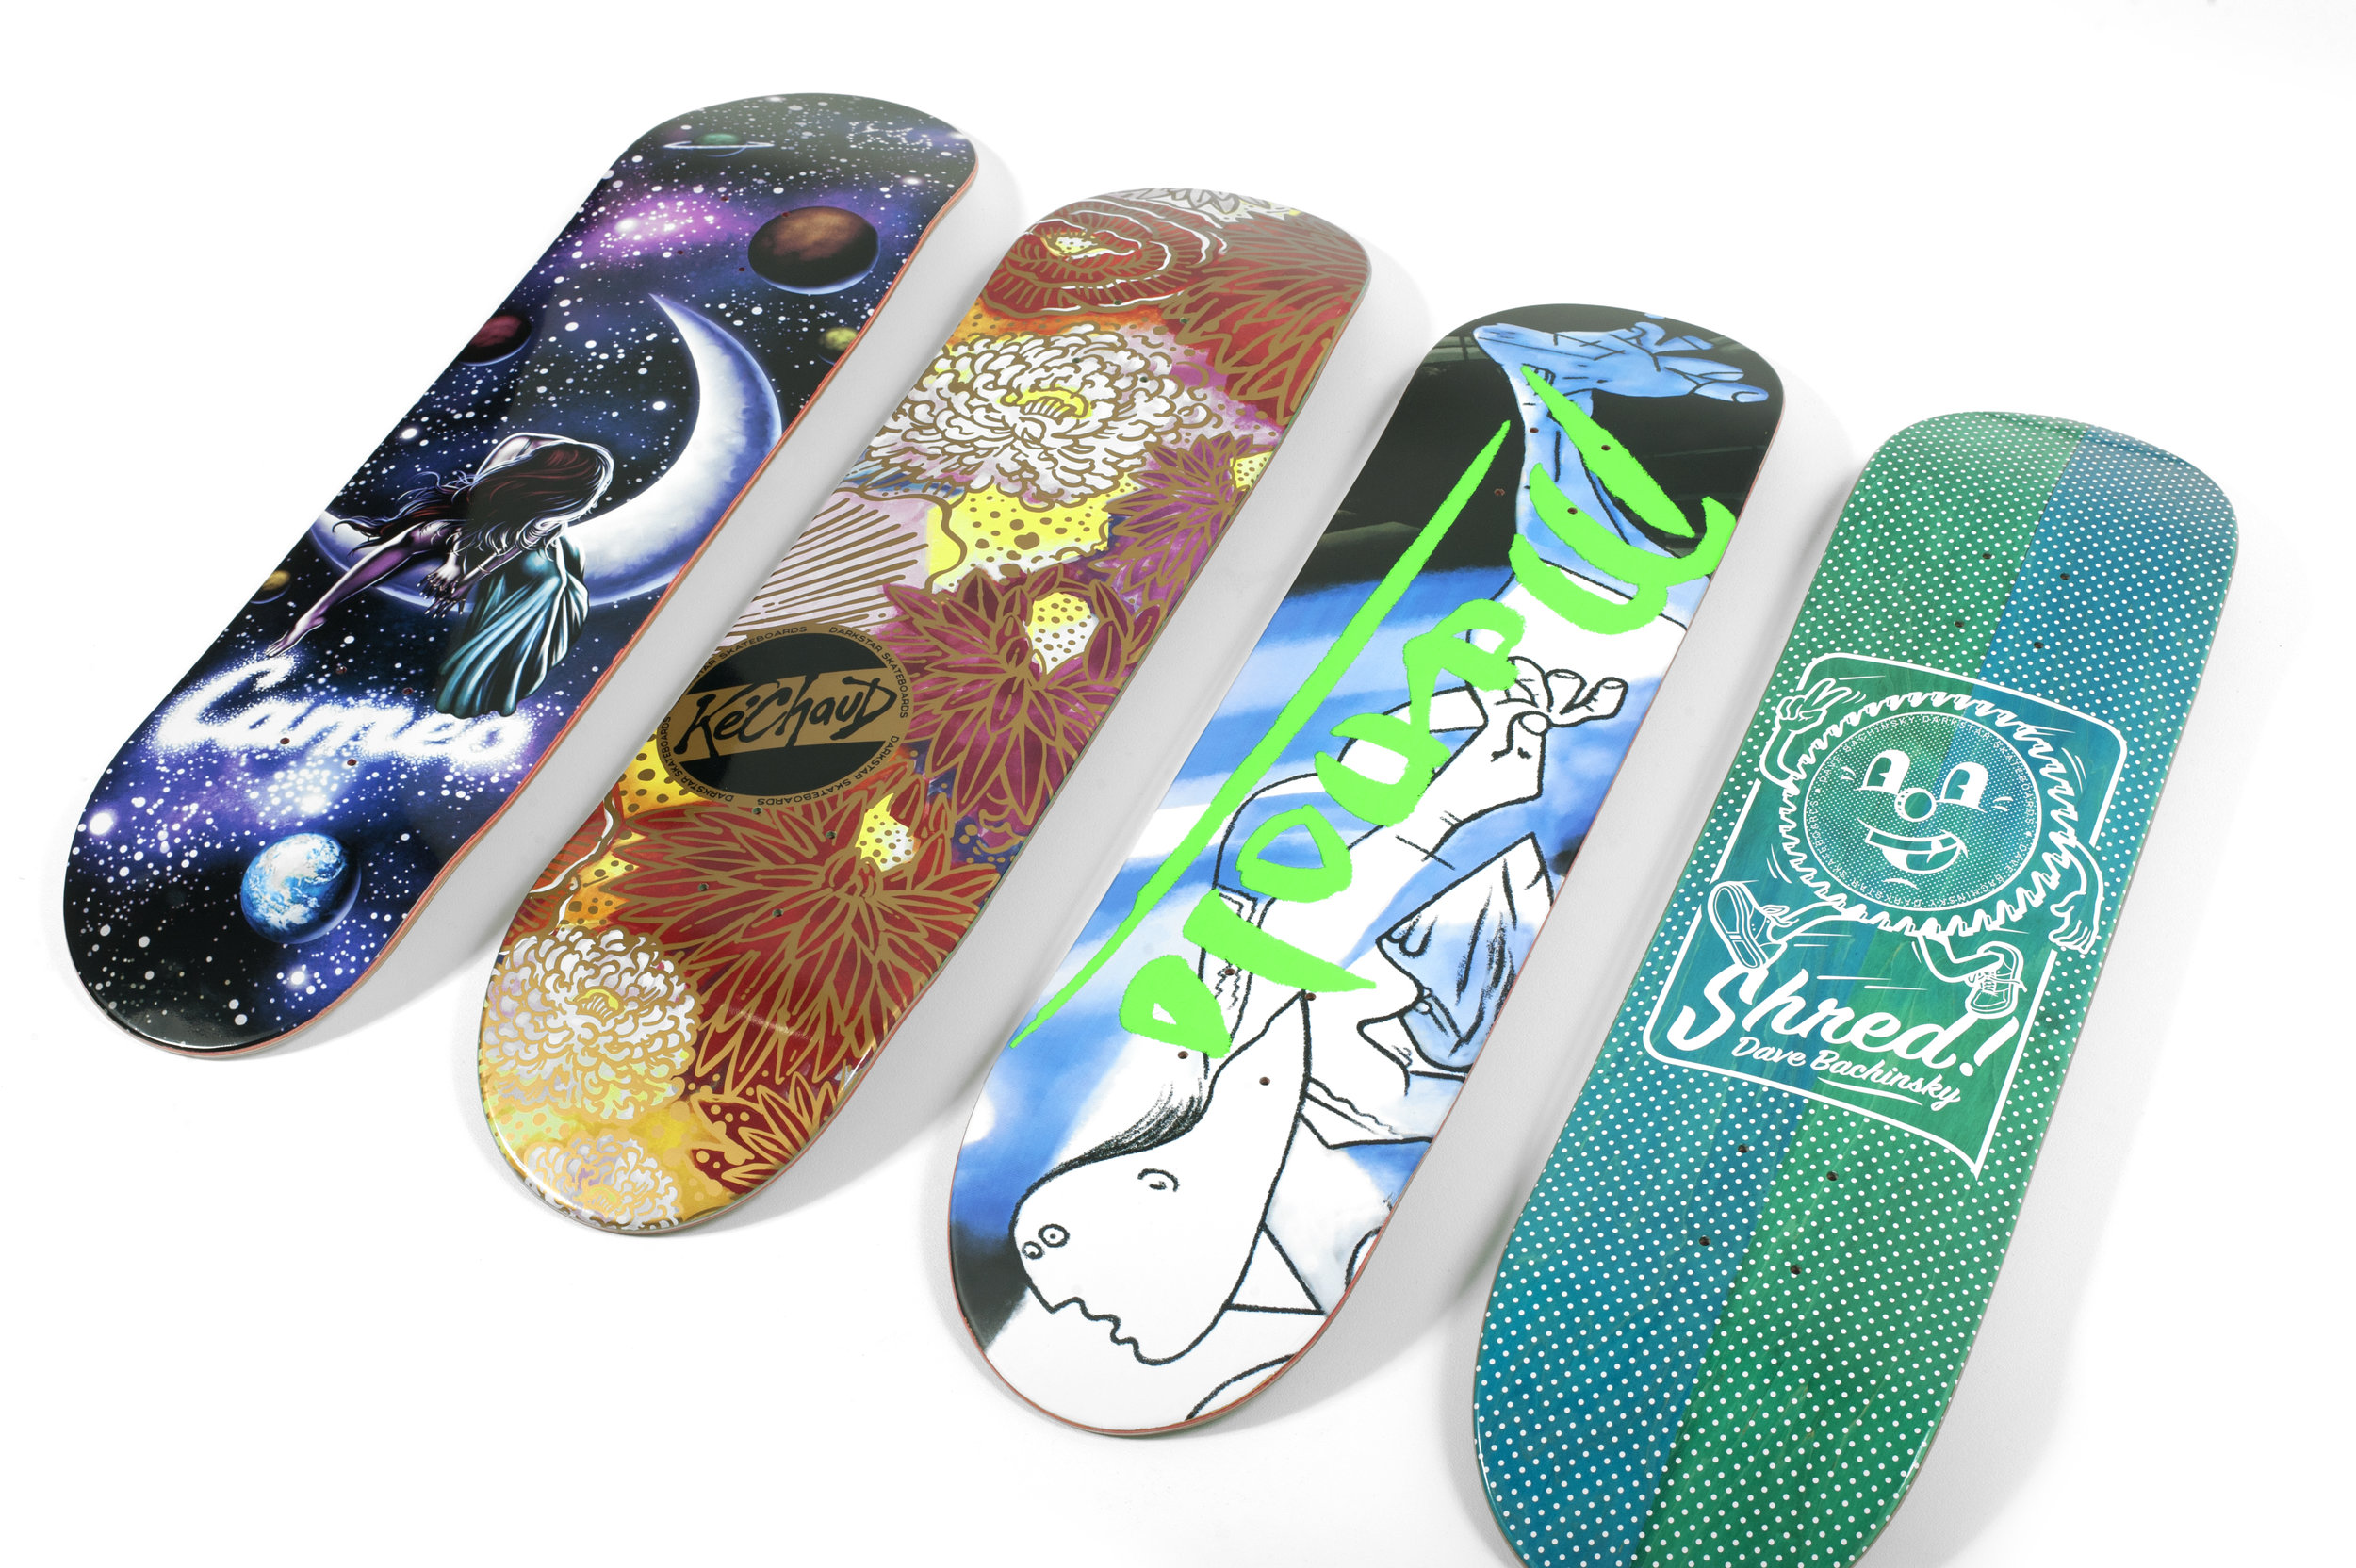 Darkstar-skateboards.jpg